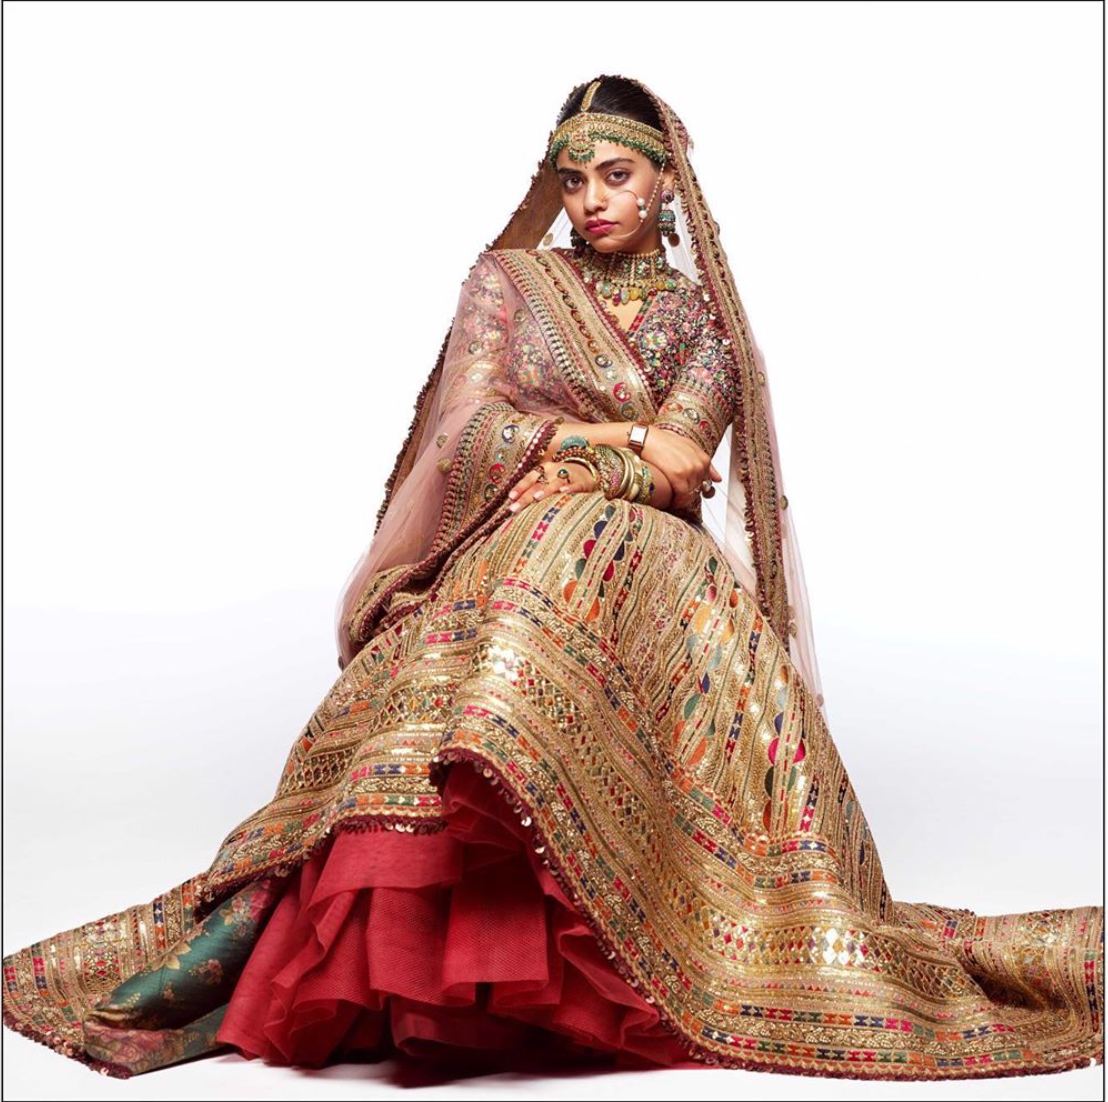 Sabyasachi Summer 2020 The Glamorous Bohemian Modern Bridal Collection - The Grand Trunk